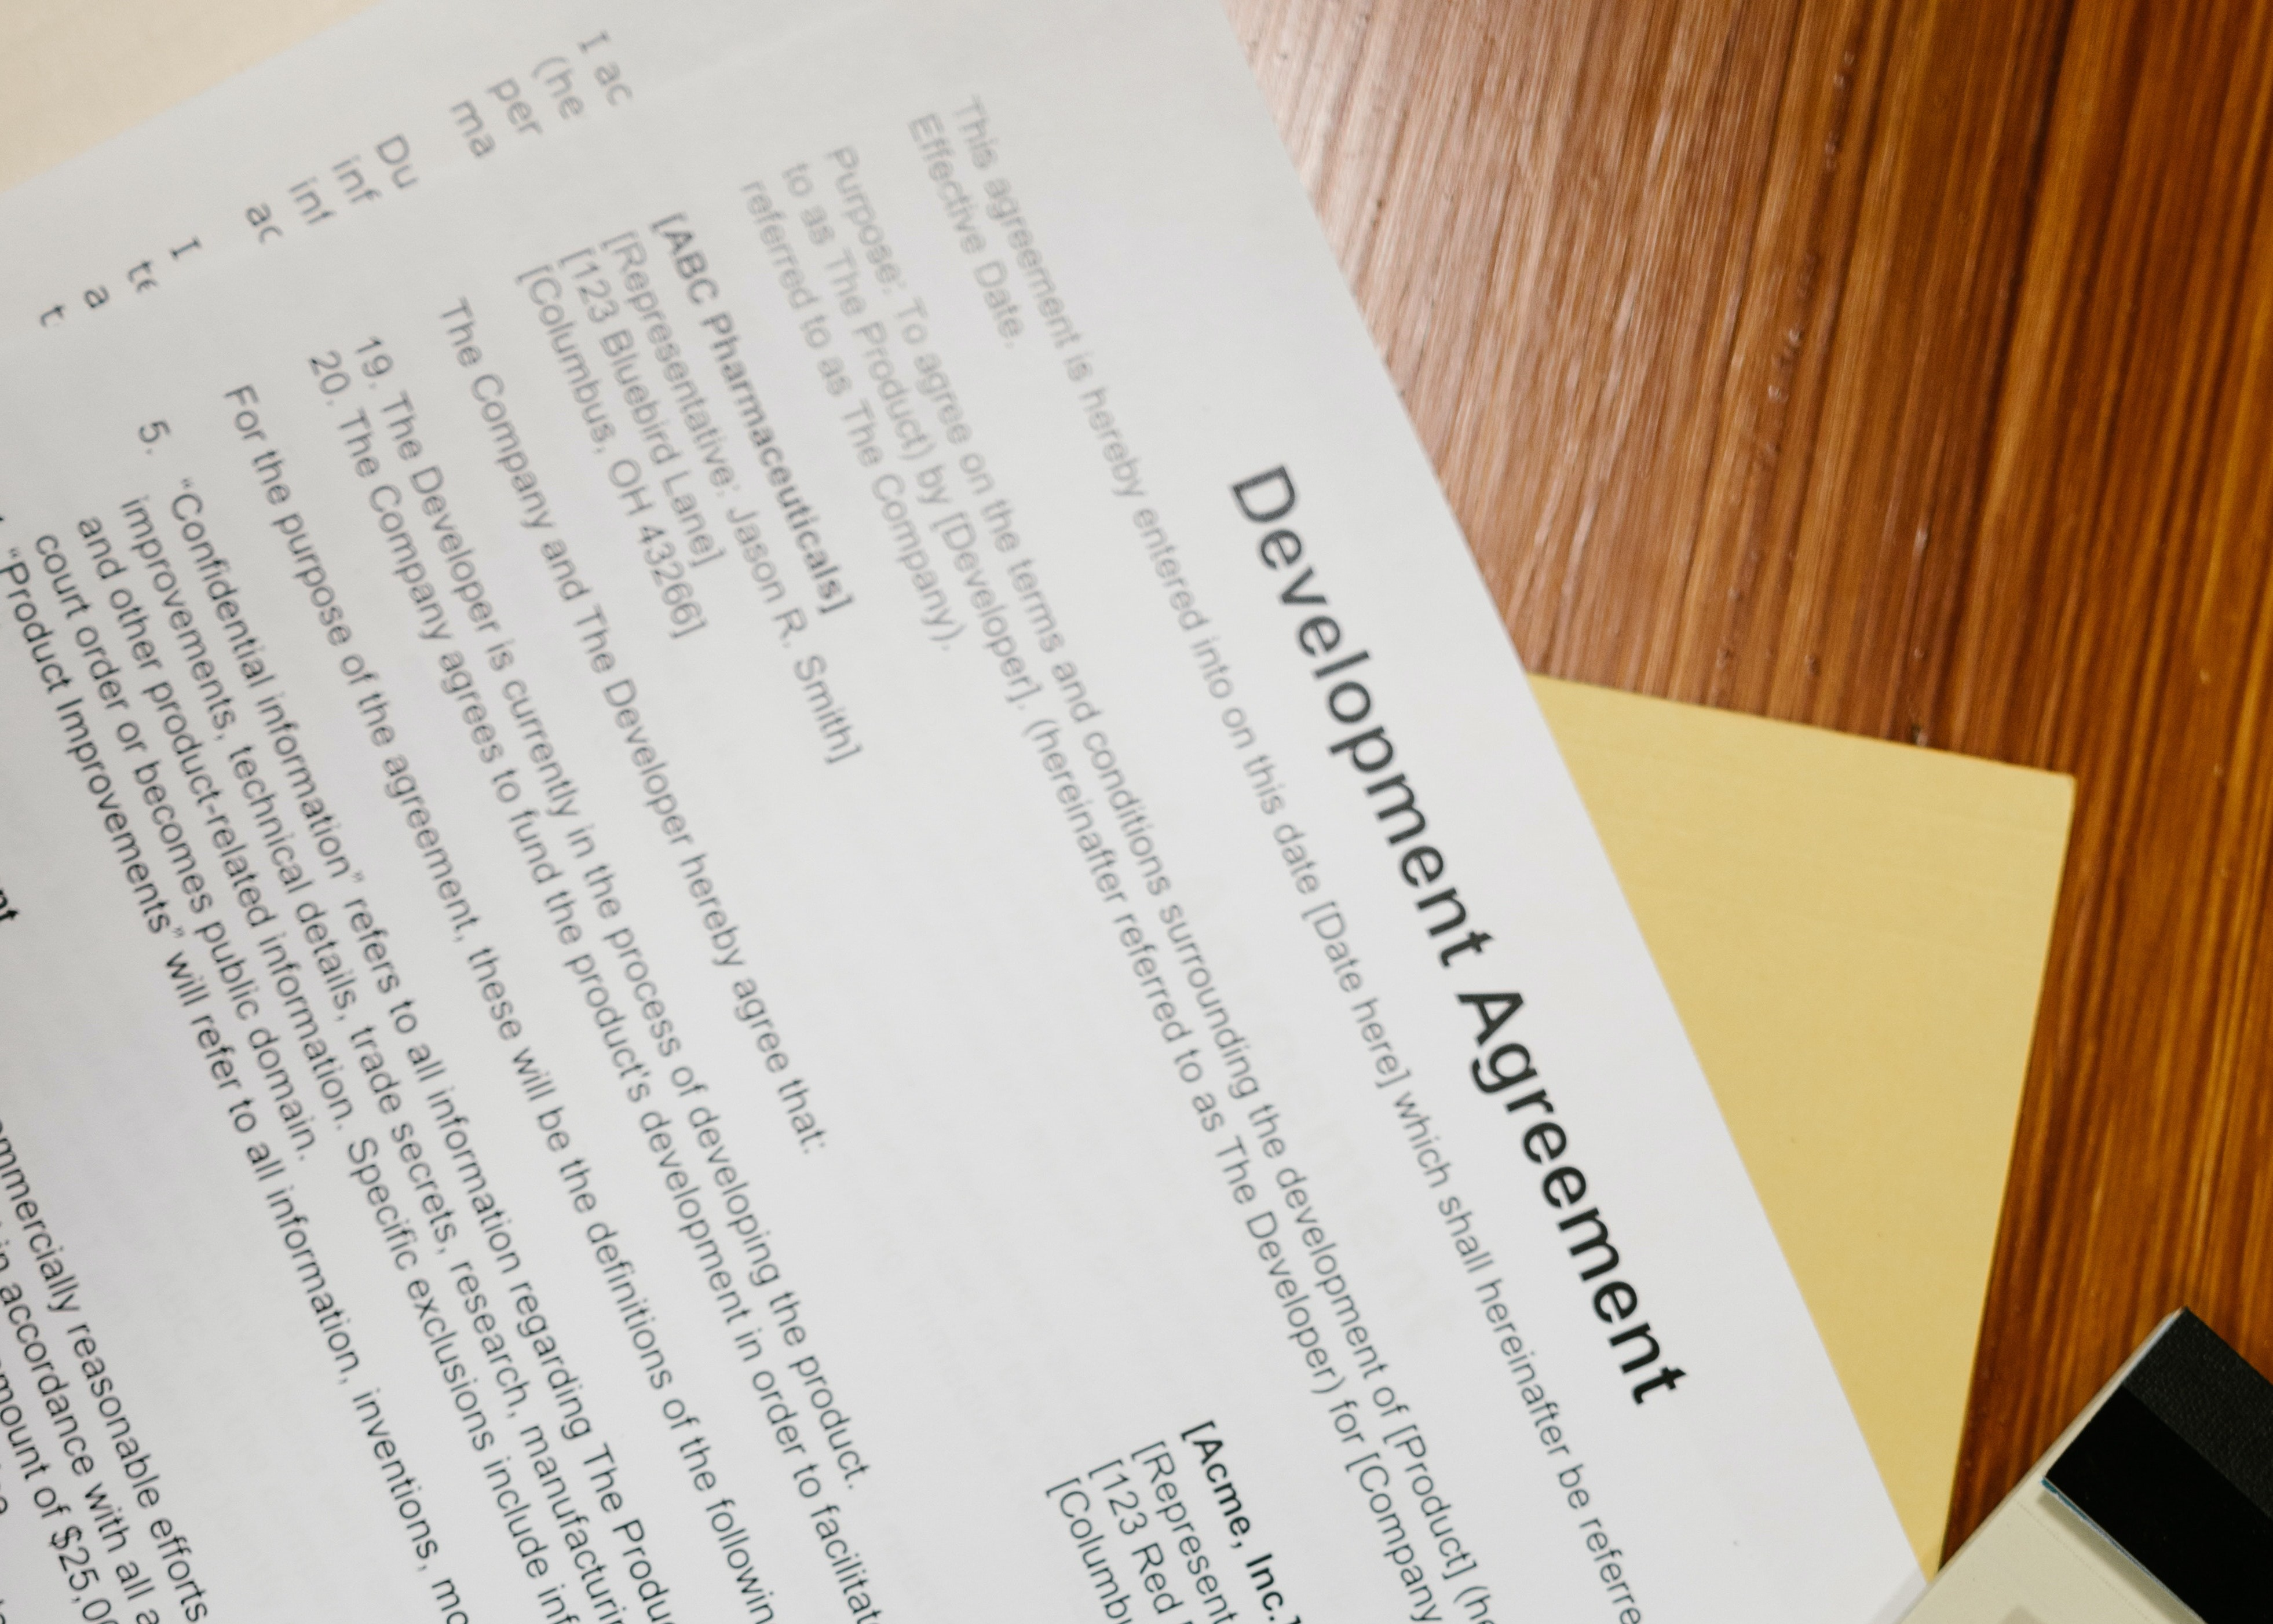 Image of a business document titled Development Agreement.